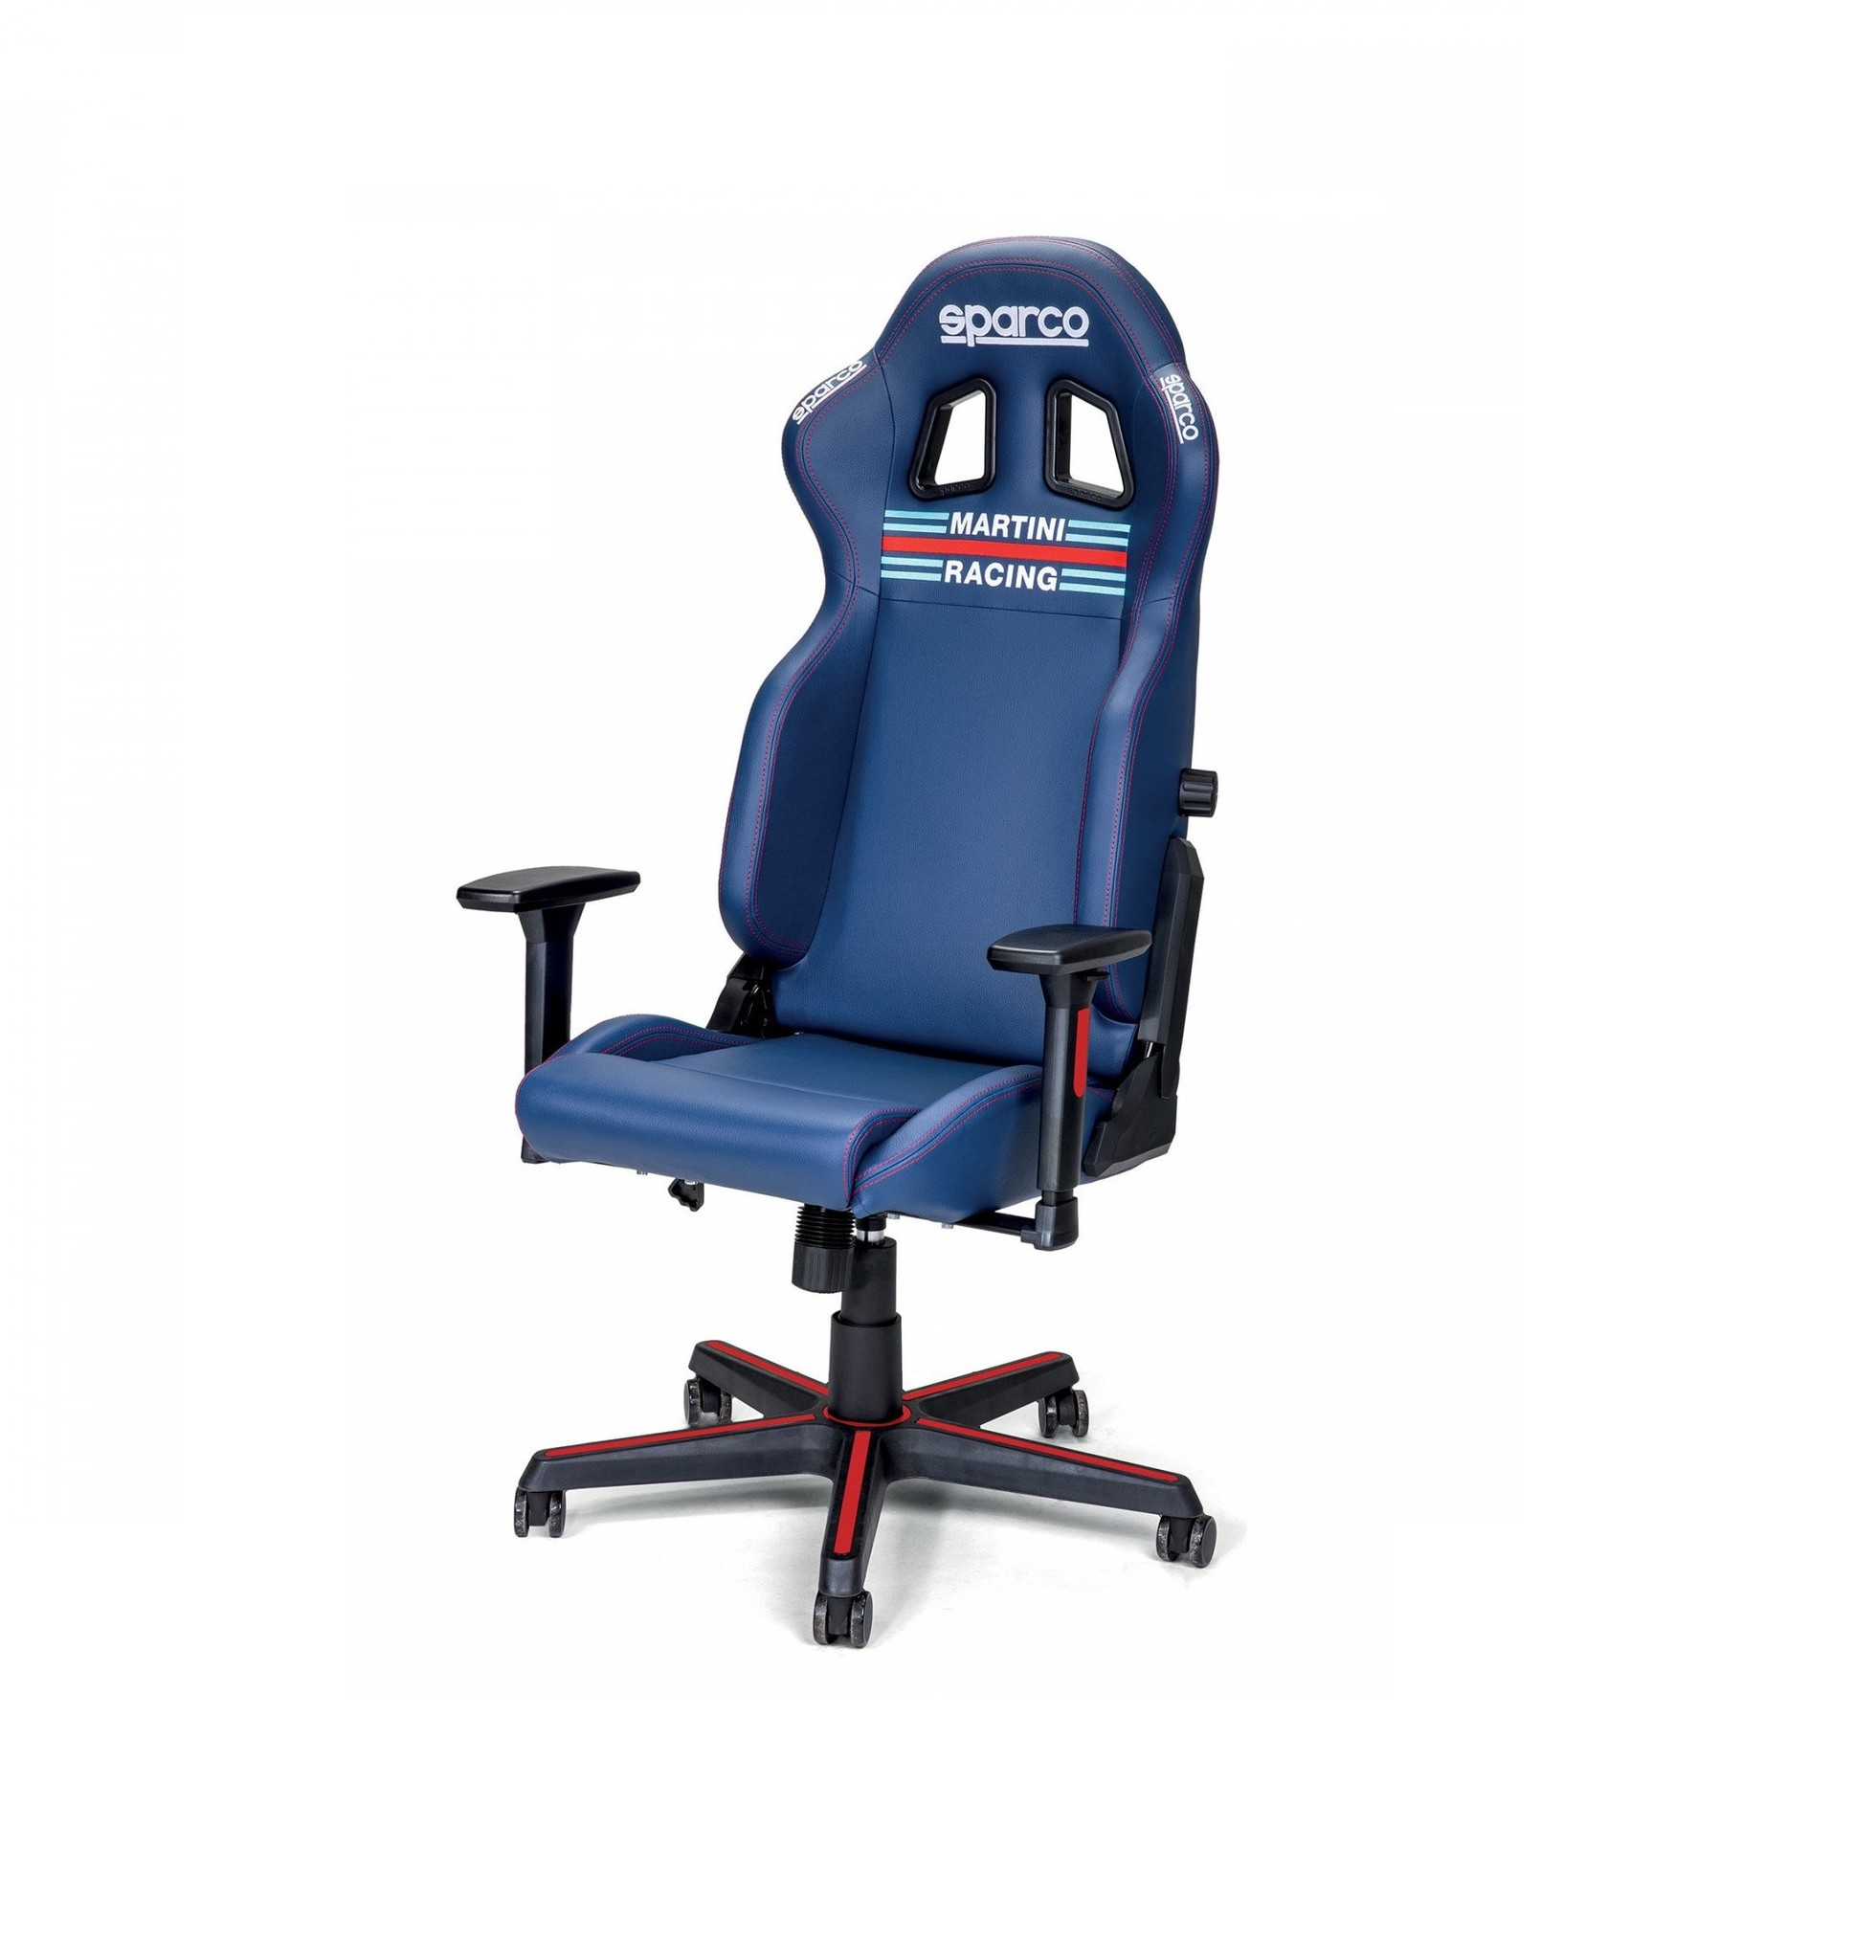 Sparco Martini Racing Chair Blue Navy